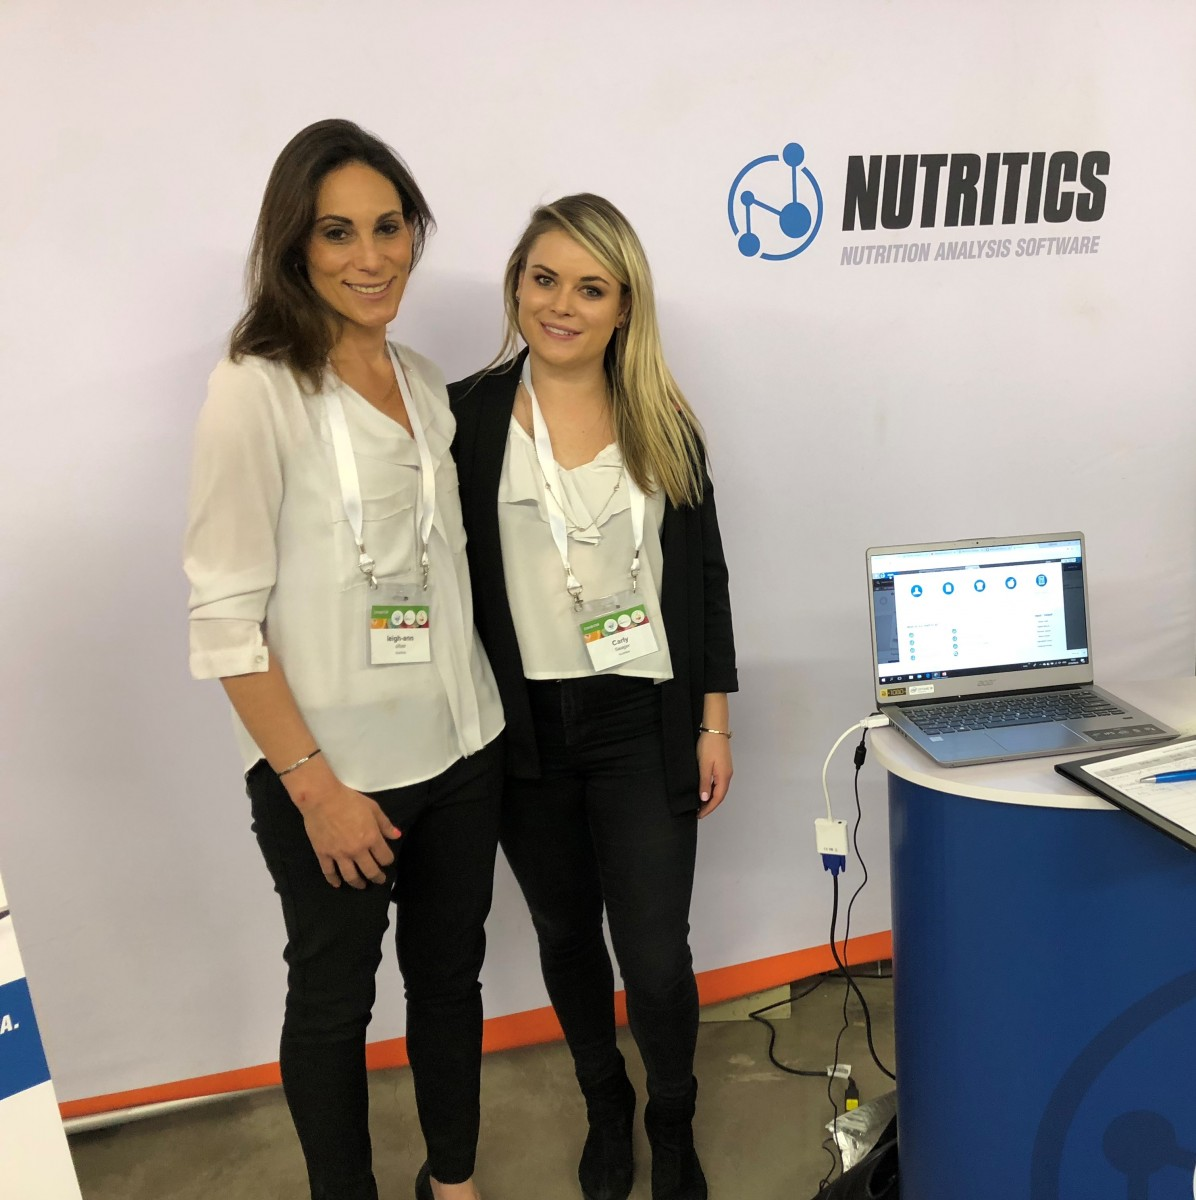 nutritics south africa, nutrition analysis south africa